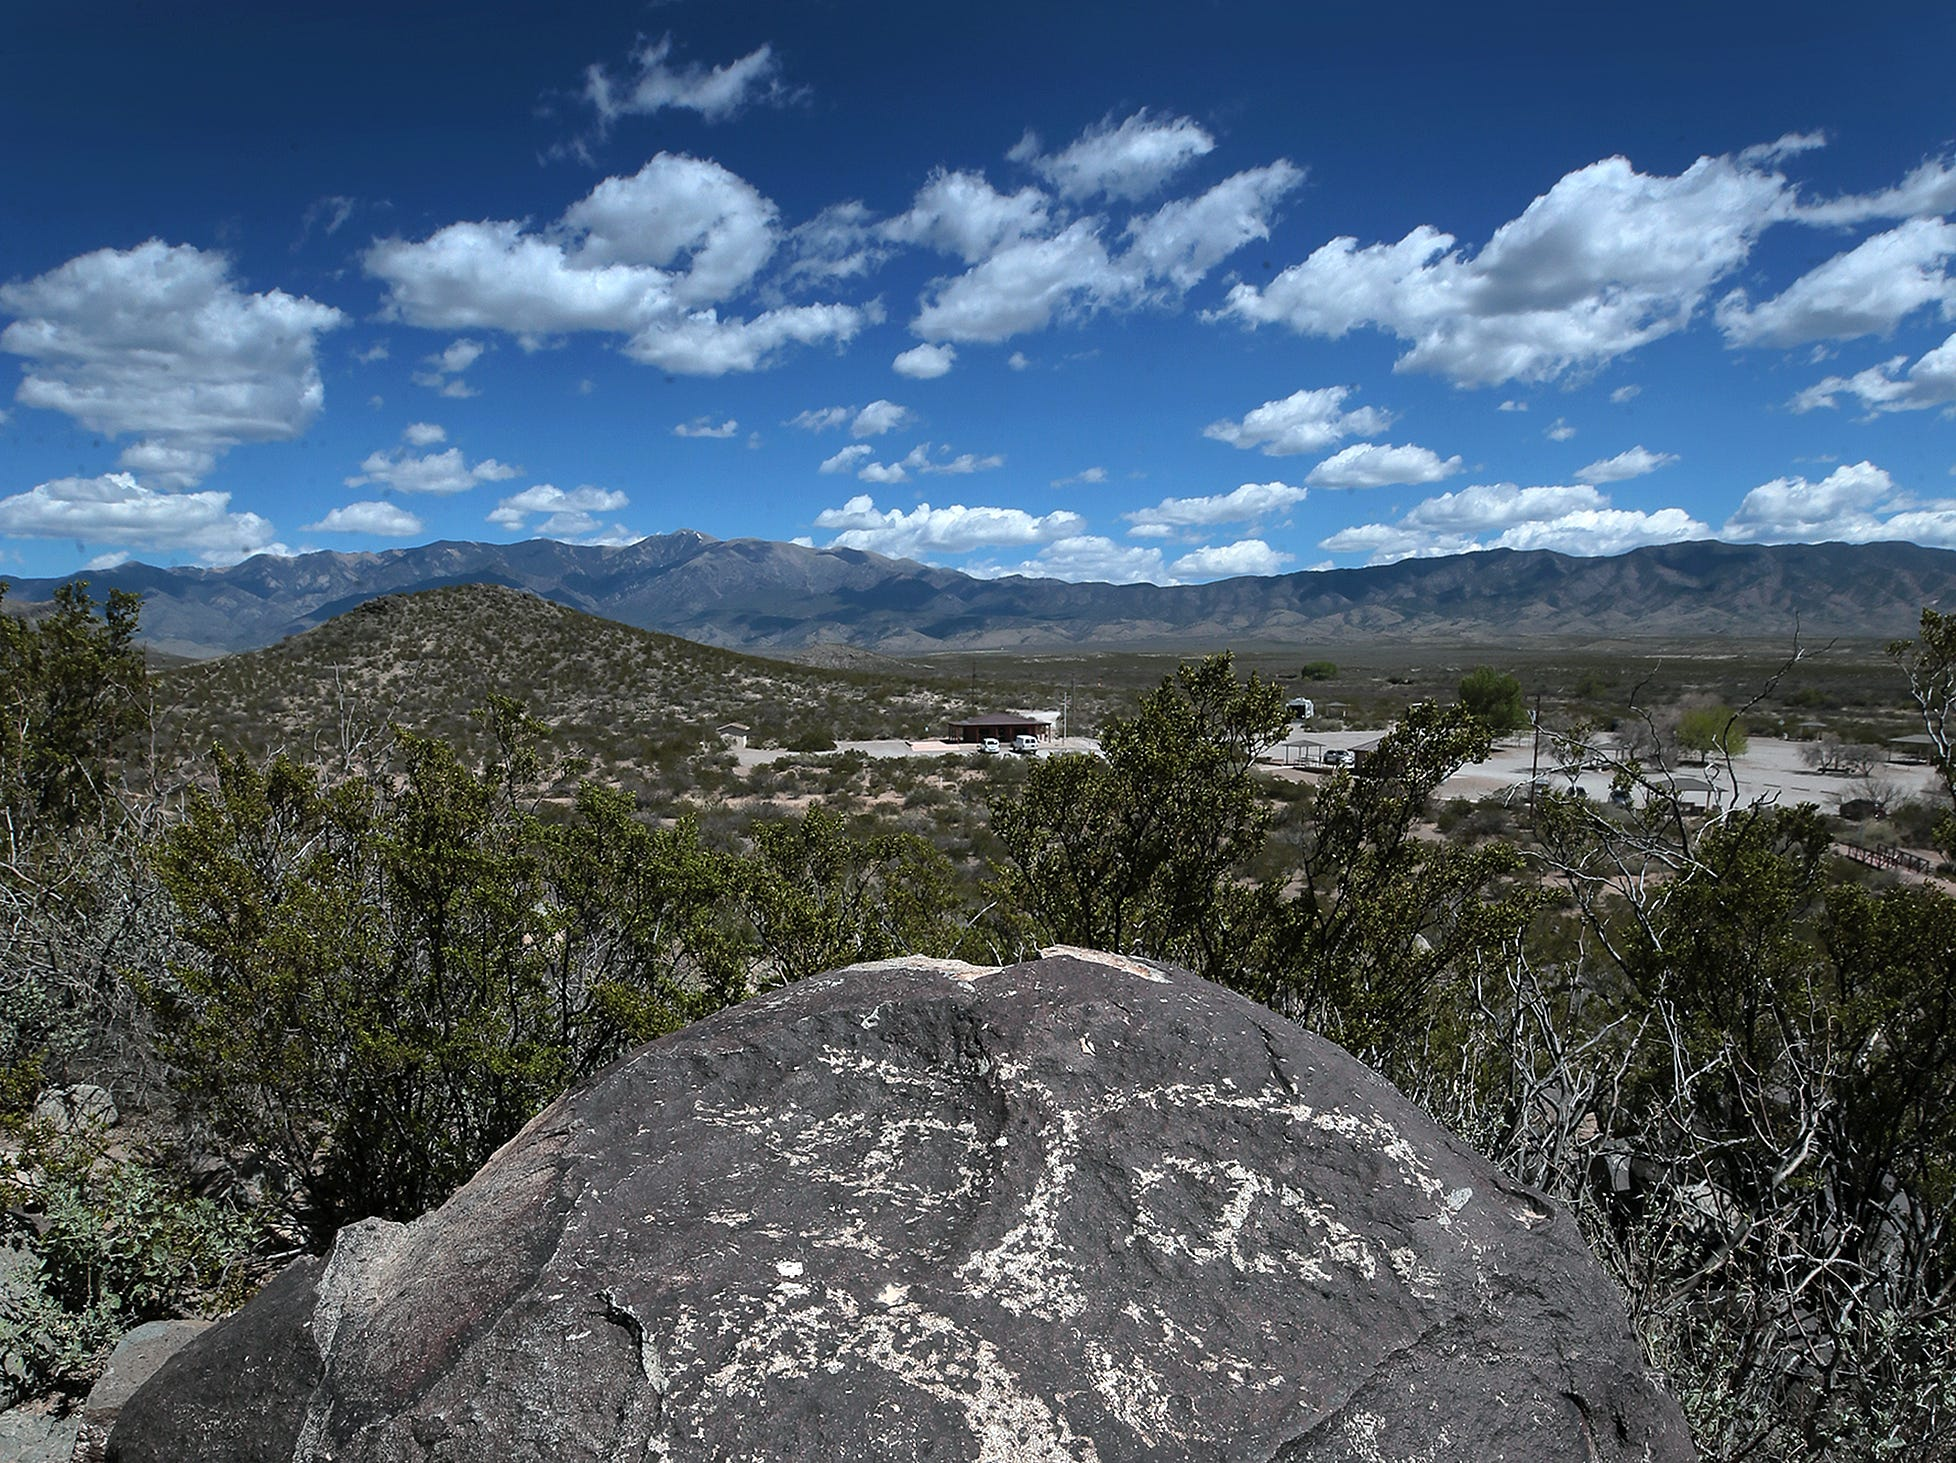 Over 21,000 petroglyphs can be seen on the short 3/4-mile trail at Three Rivers Petroglyph Site north of Alamogordo, New Mexico. Admission to the national park is $5 per carload and campsites are available.